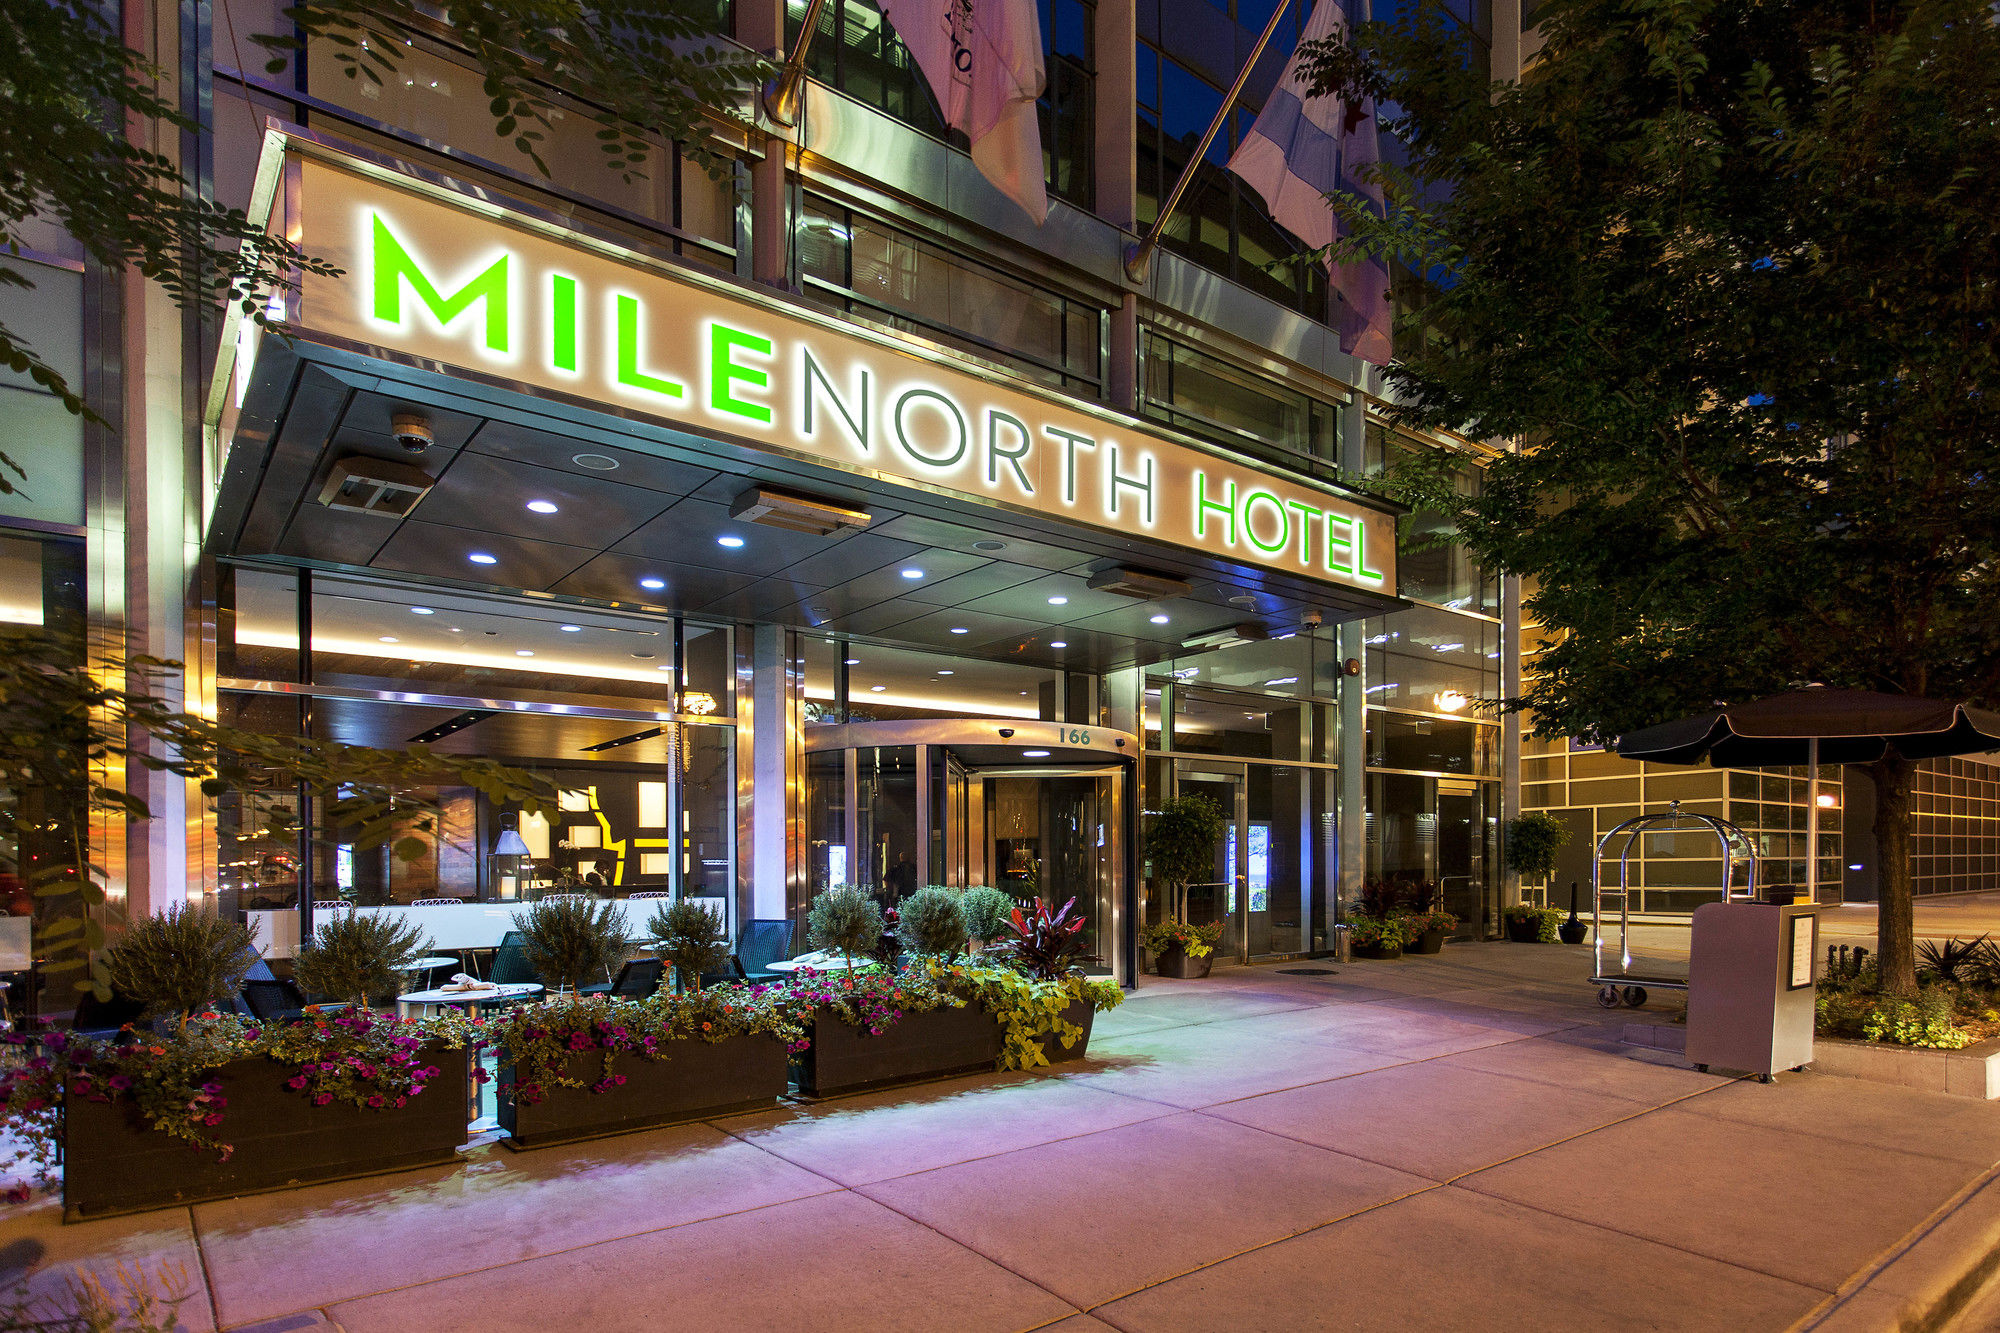 Chicago Hotel Coupons for Chicago, Illinois - FreeHotelCoupons.com